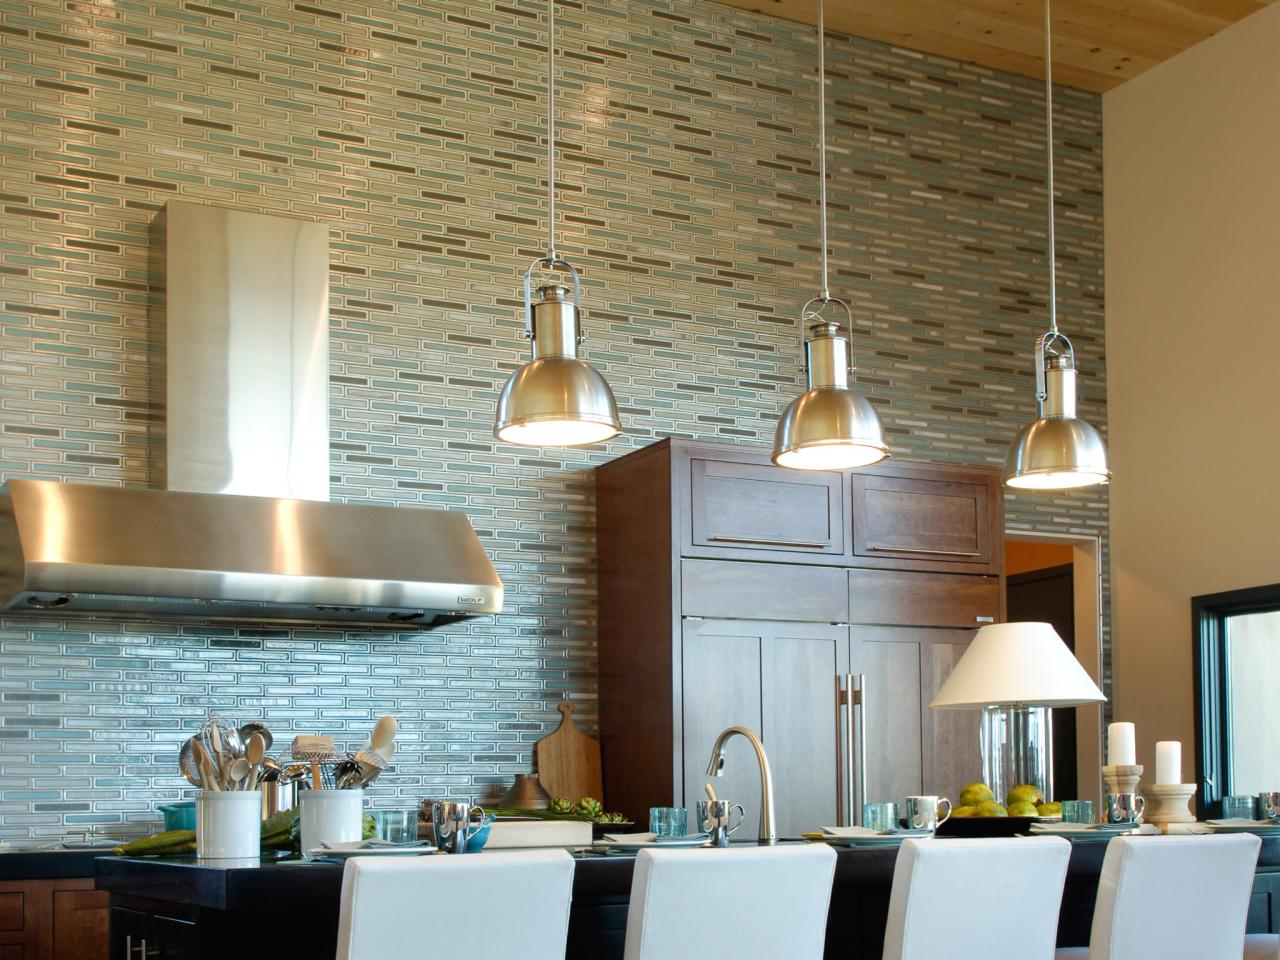 kitchen backsplash tile ideas 4x3.jpg.rend .hgtvcom.1280.960 - 49+ Small House Kitchen Tiles Design  Pictures